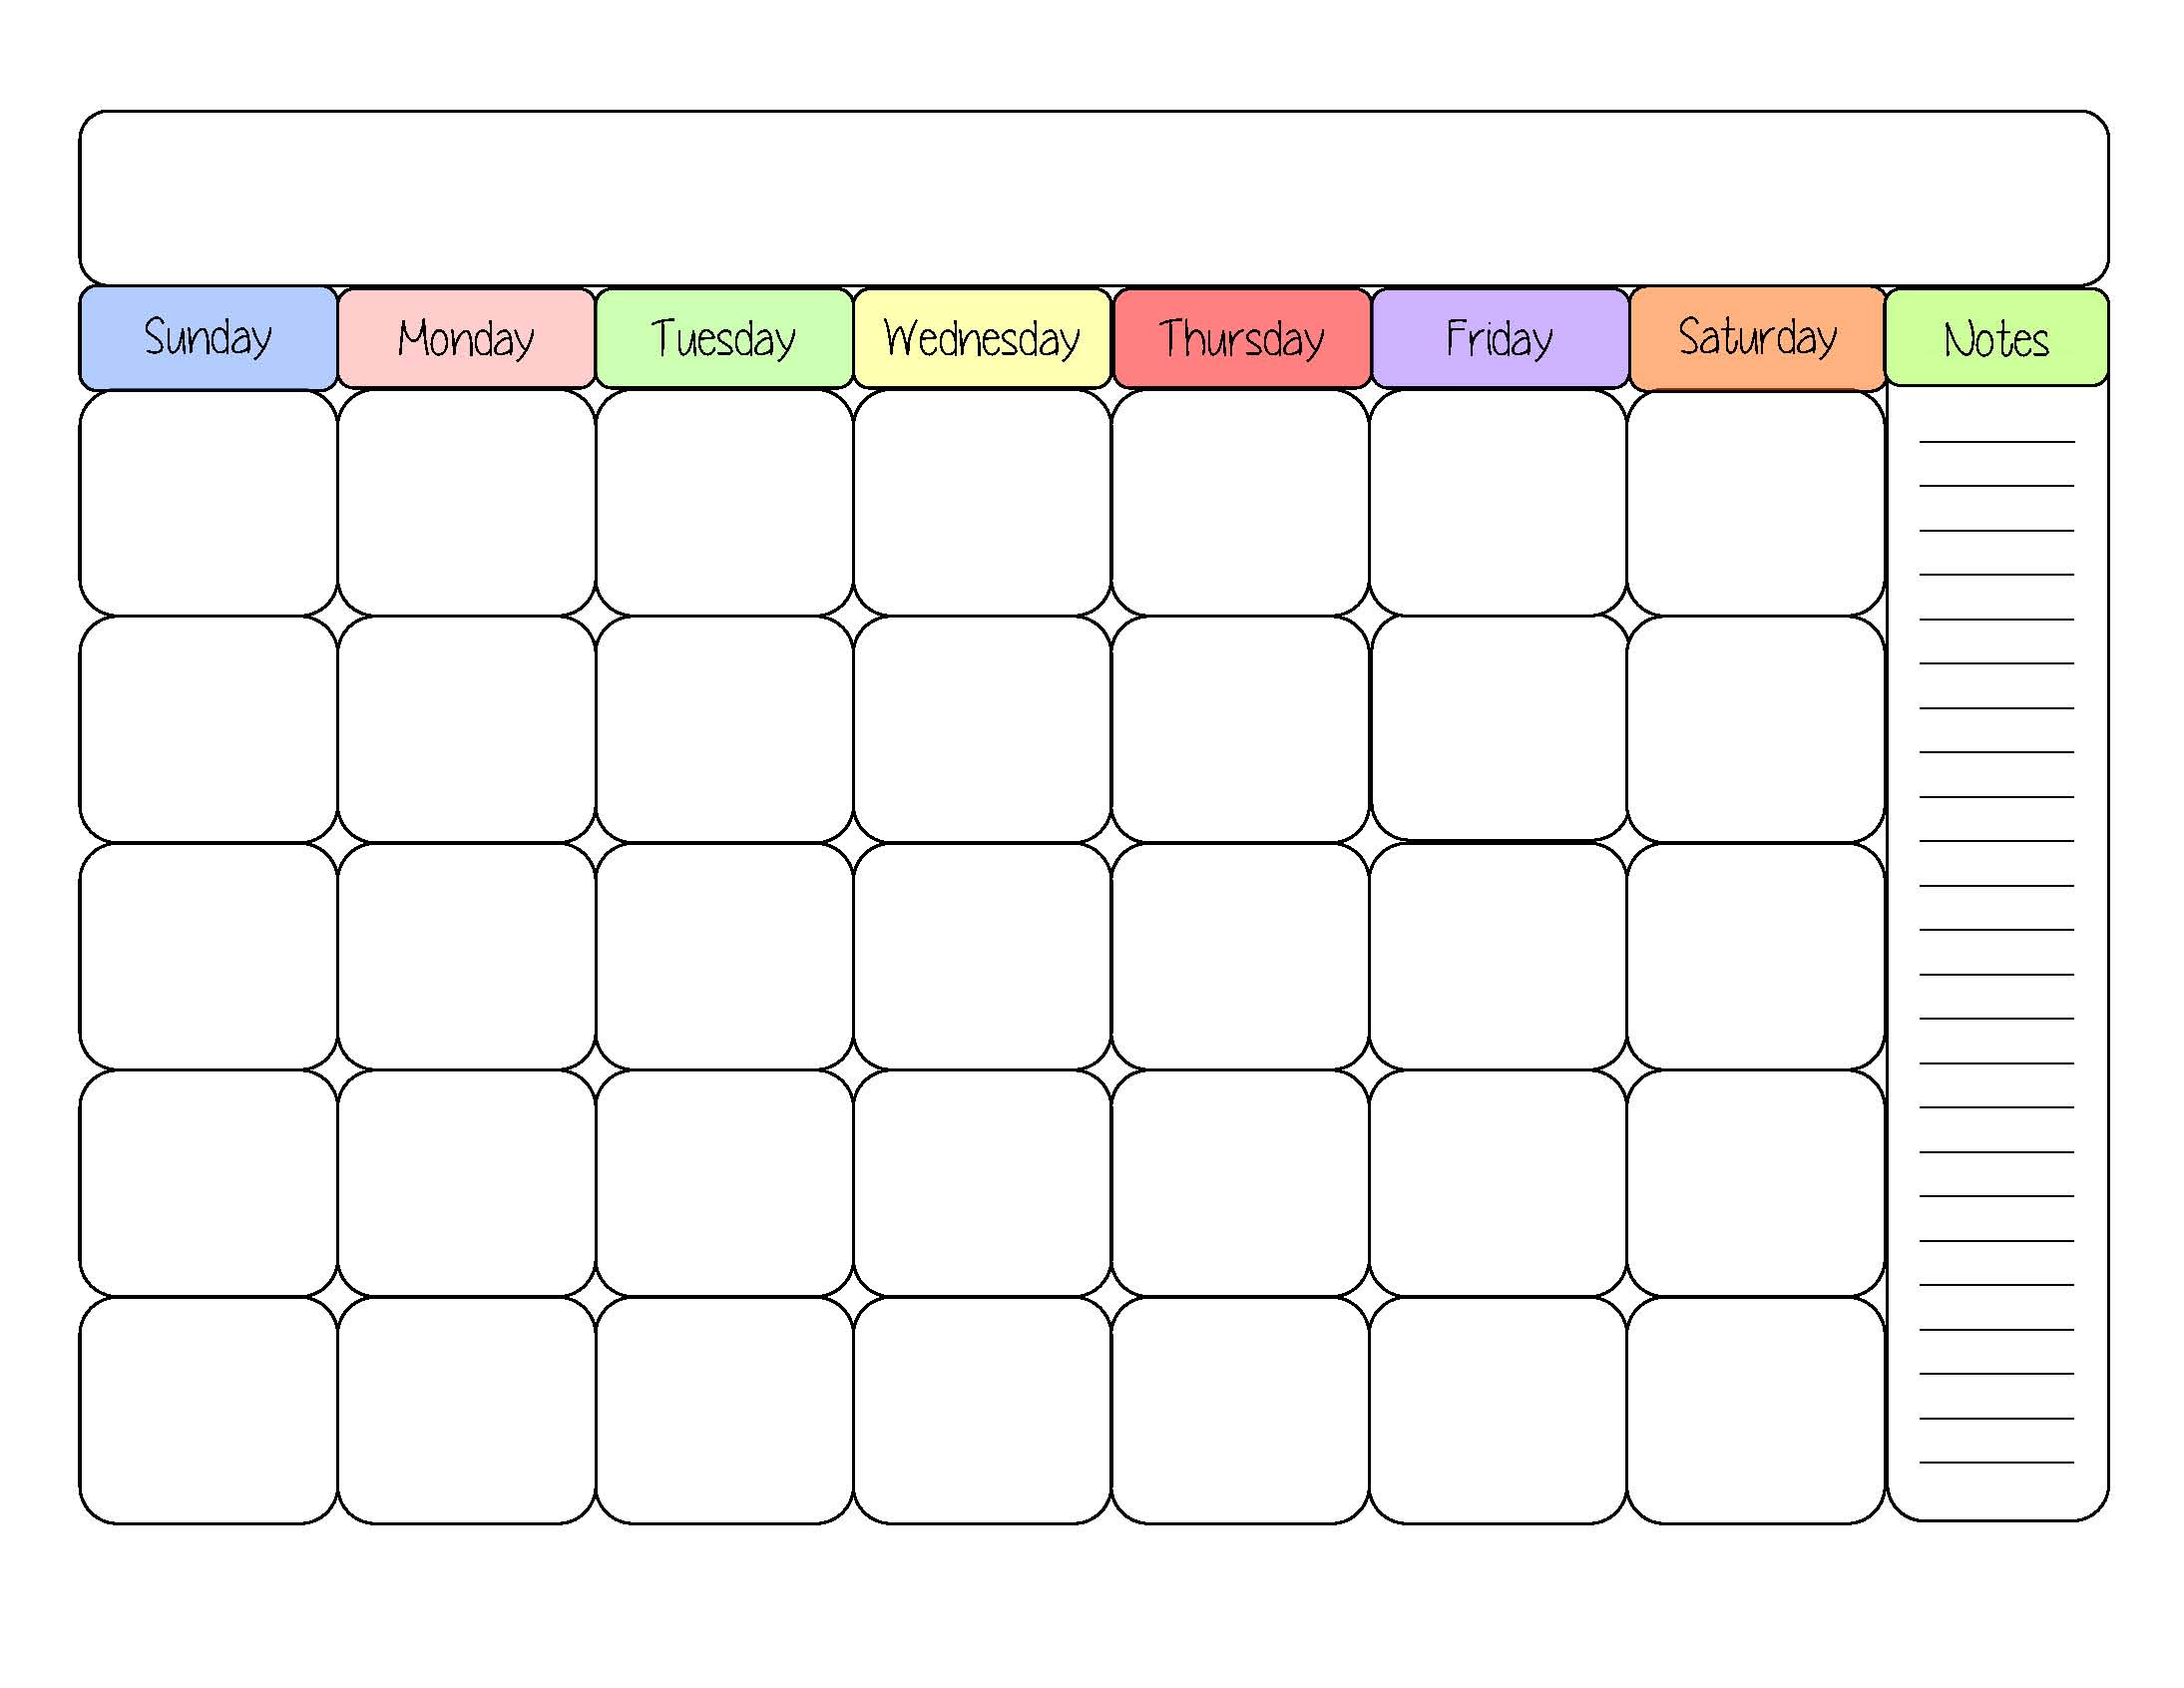 Free Printable Calendar Template Simply Sweet Days